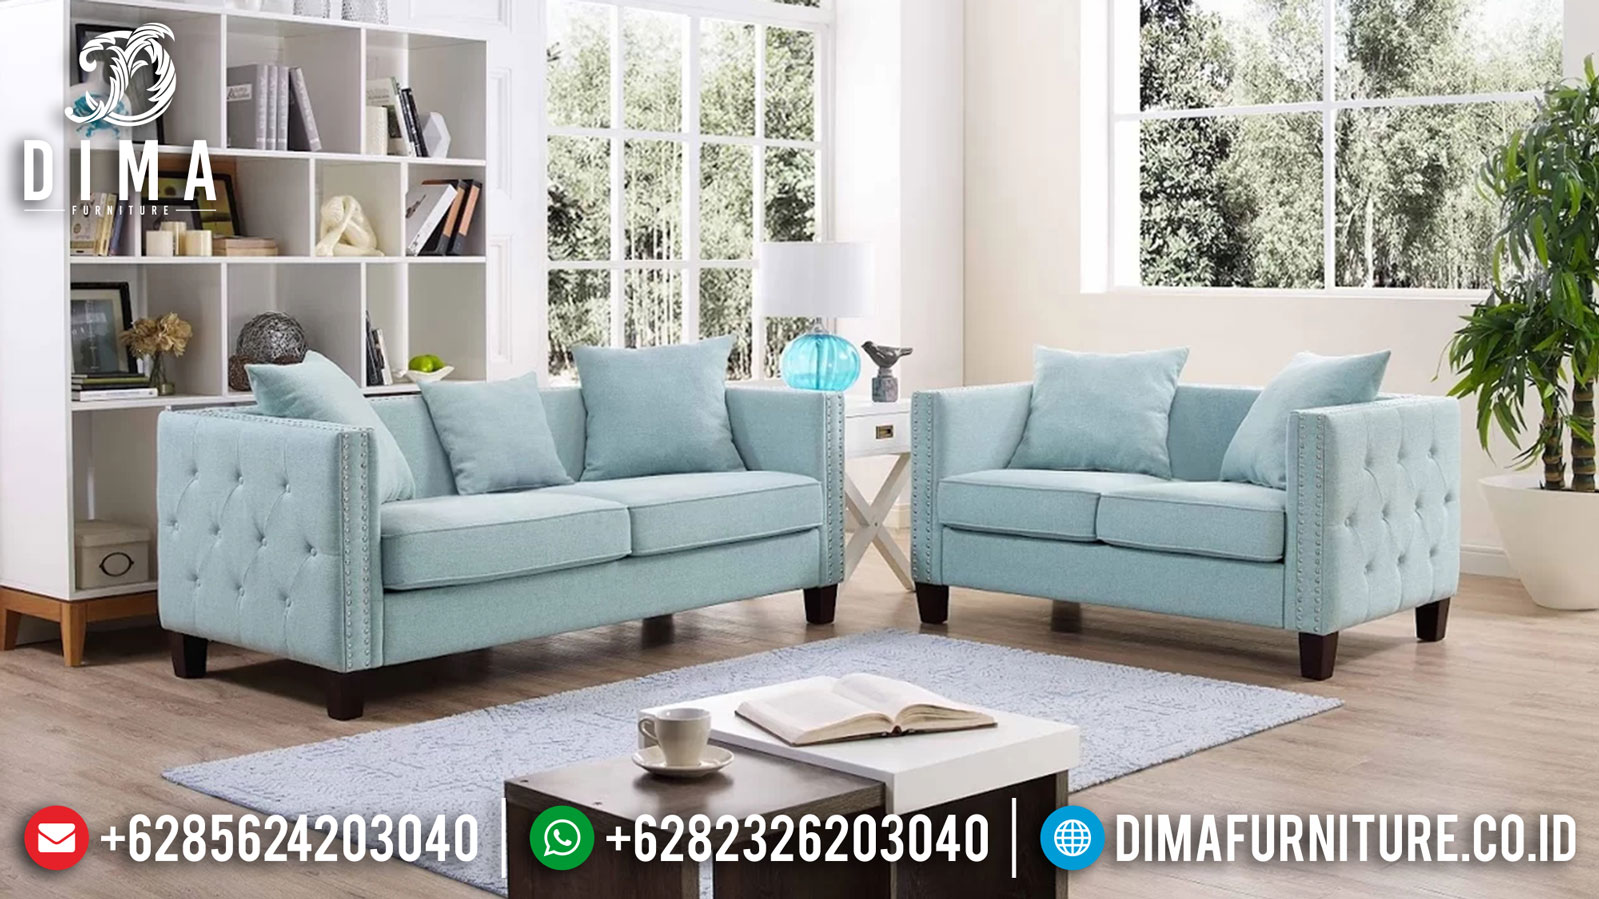 Sofa Tamu Minimalis Jepara Garcia Best Seller Furniture Jepara 2021 TTJ-1257